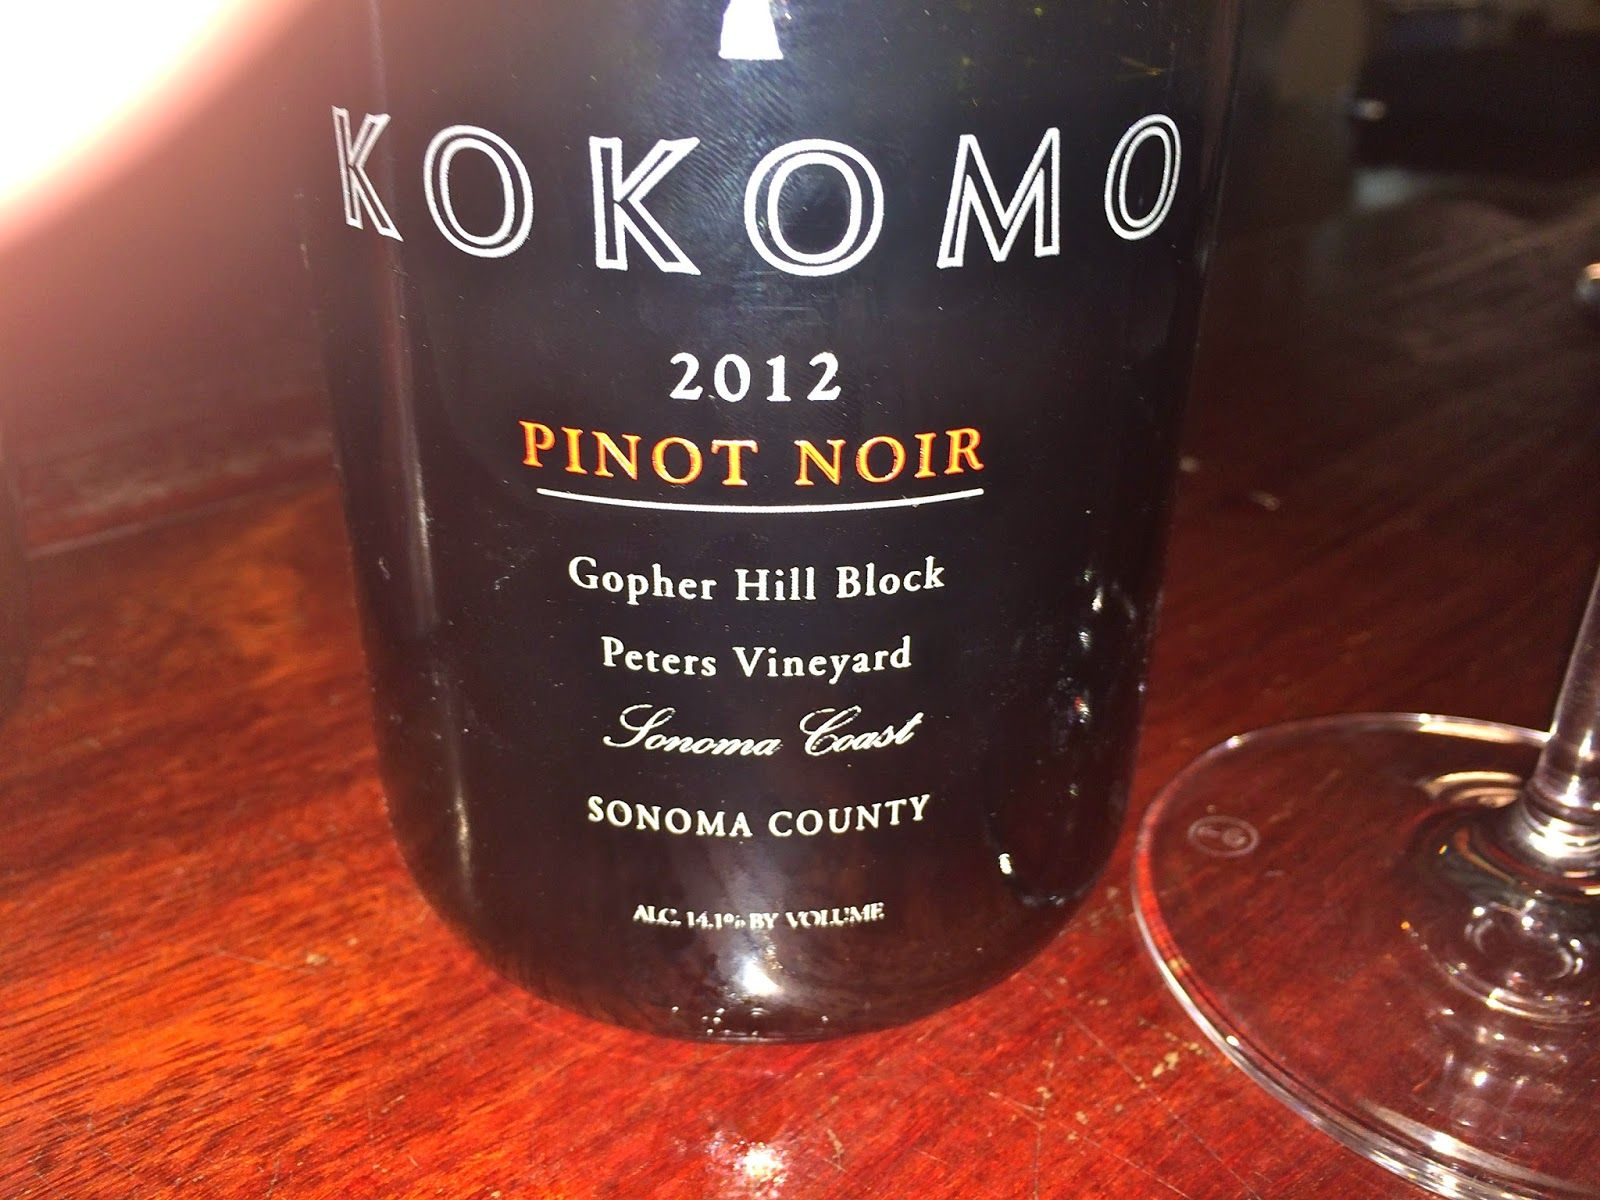 Tasting Pinot Noir At Kokomo Winery Spaswinefood Wine Tasting Kokomo Winery